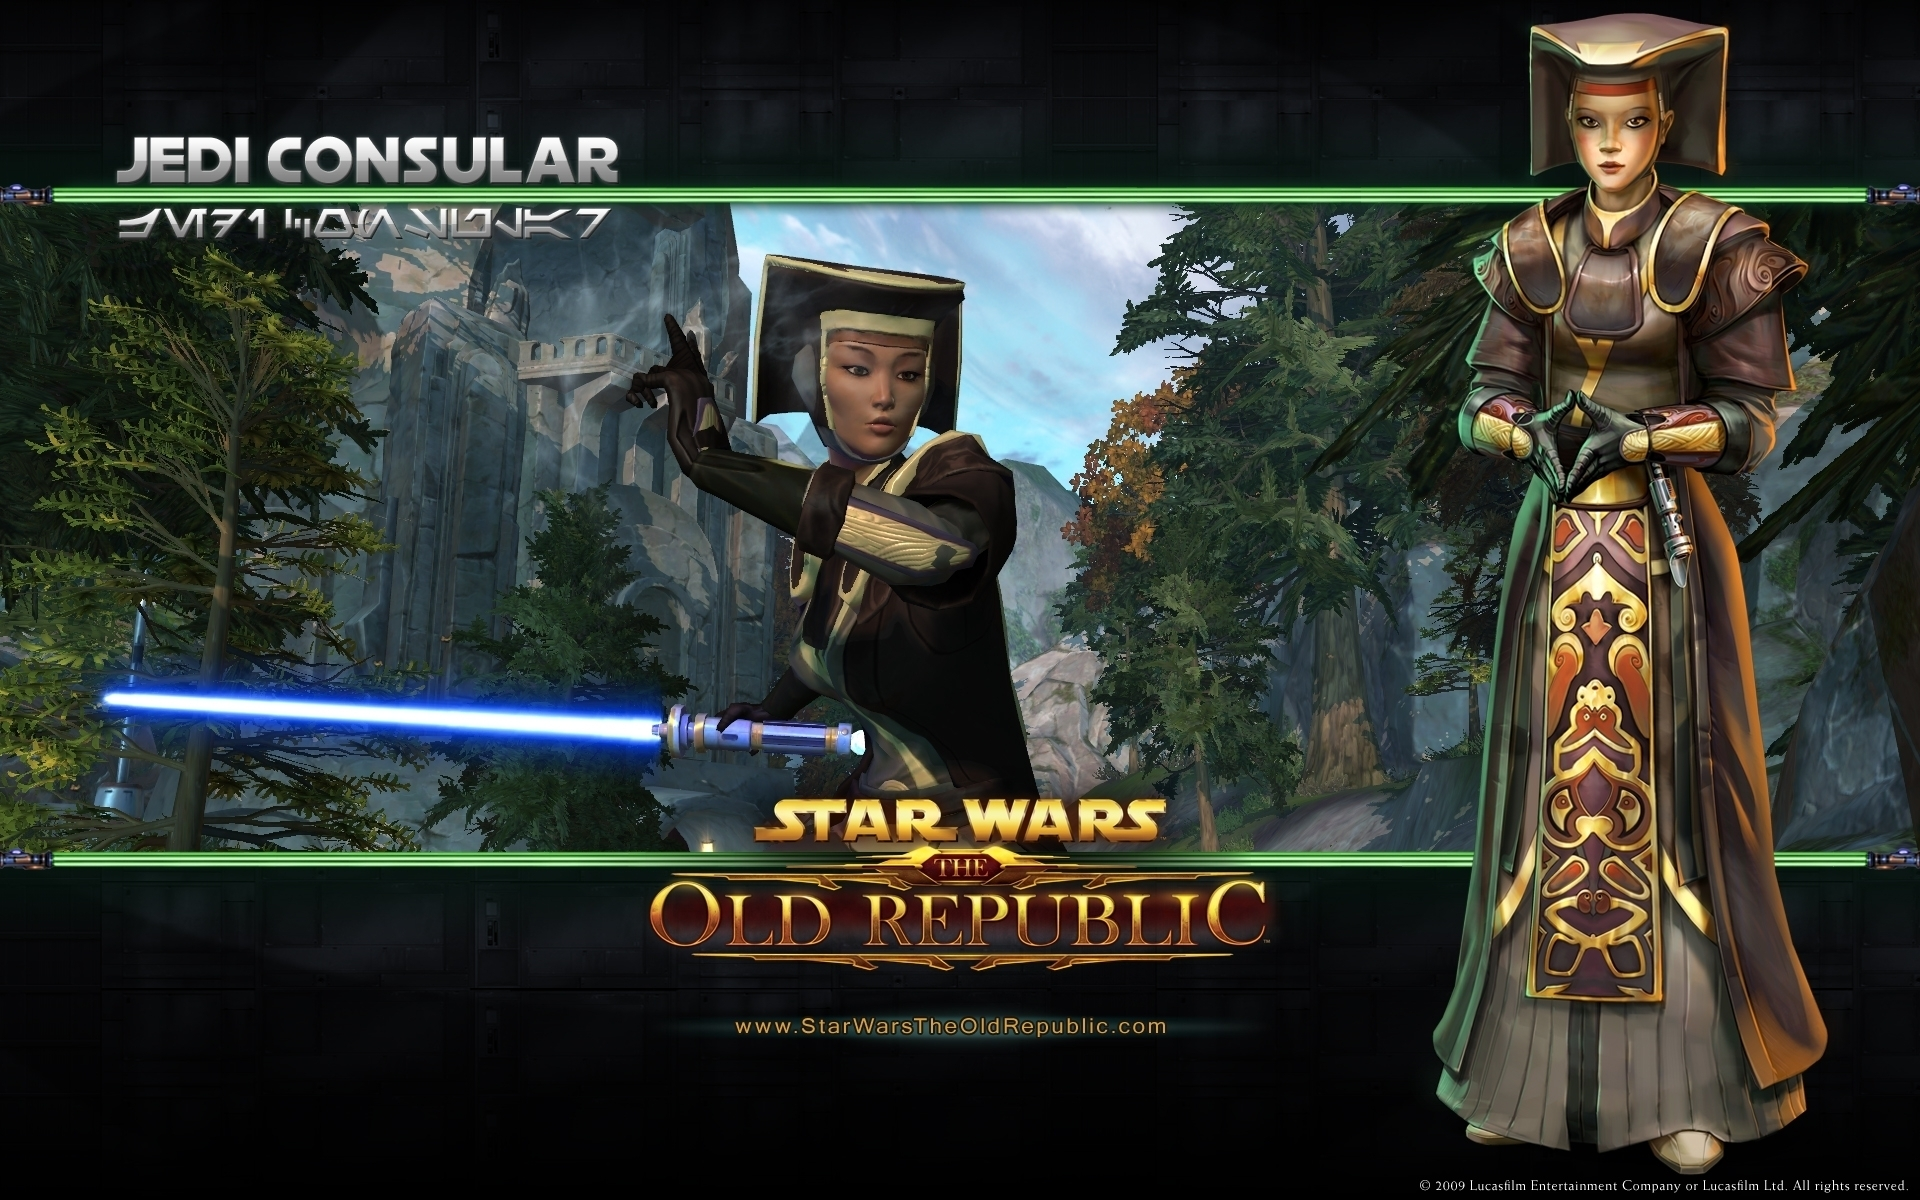 Star Wars The Old Republic Jedi Consular wallpaper